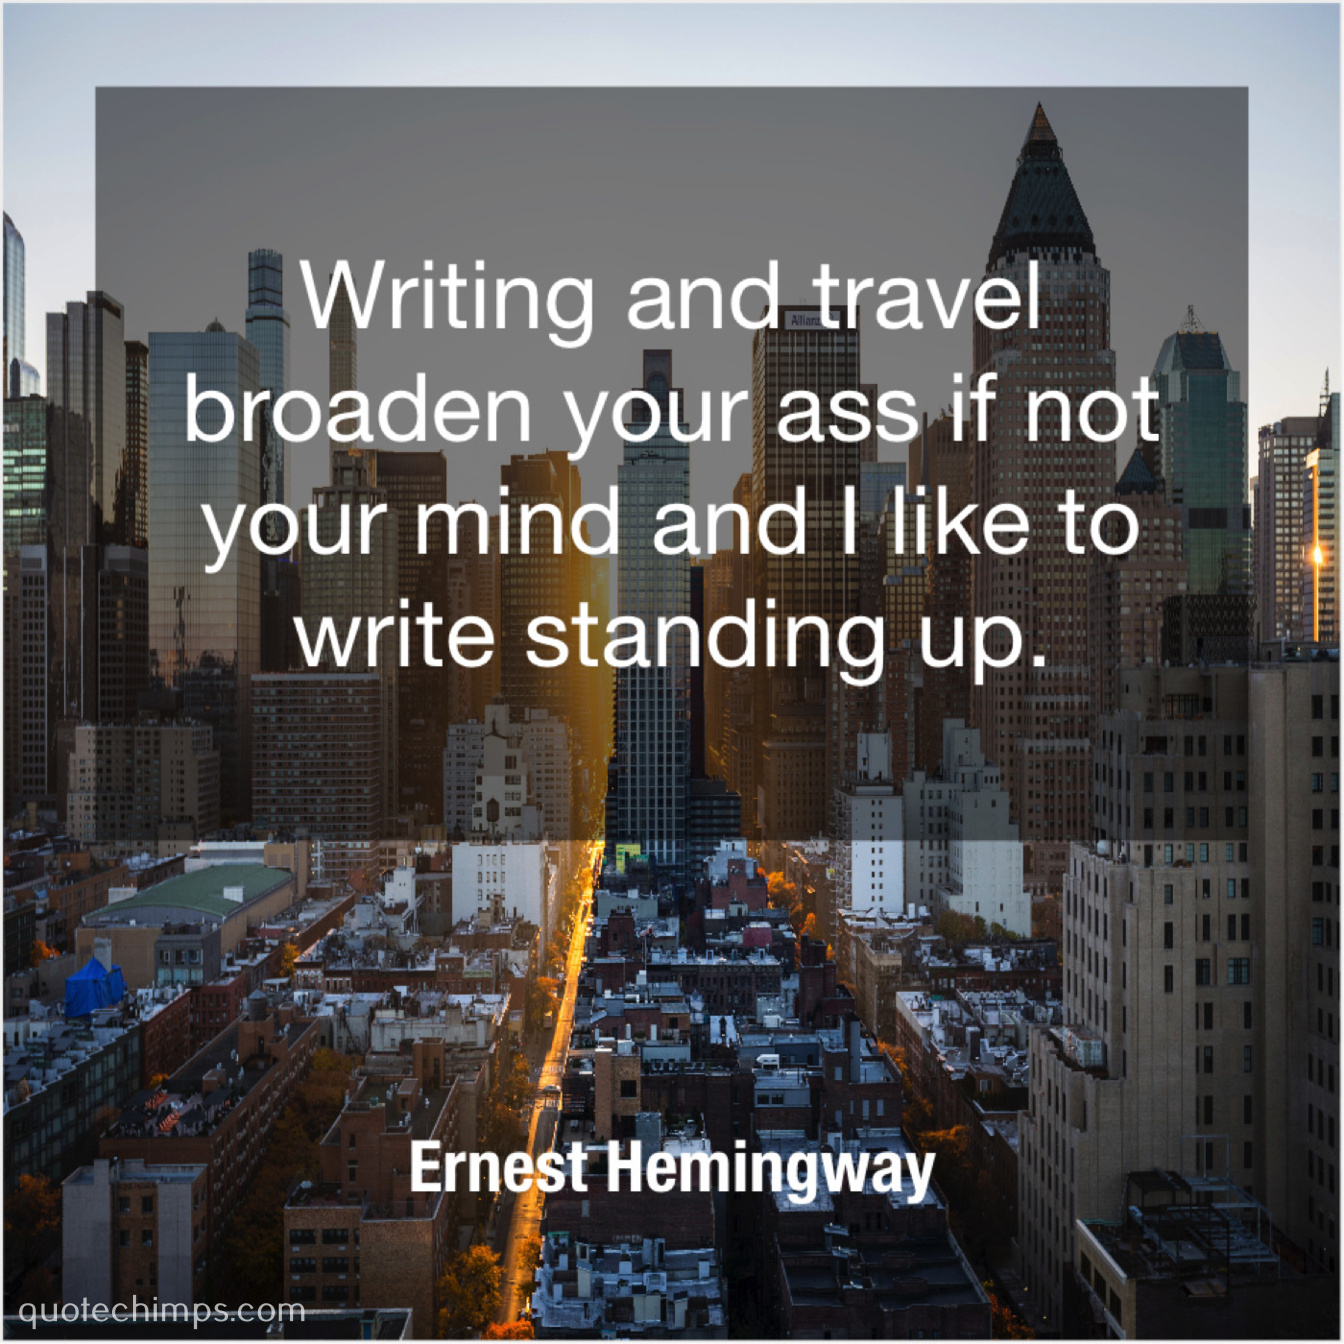 Ernest Hemingway Writing And Travel Broaden Your Quote Chimps